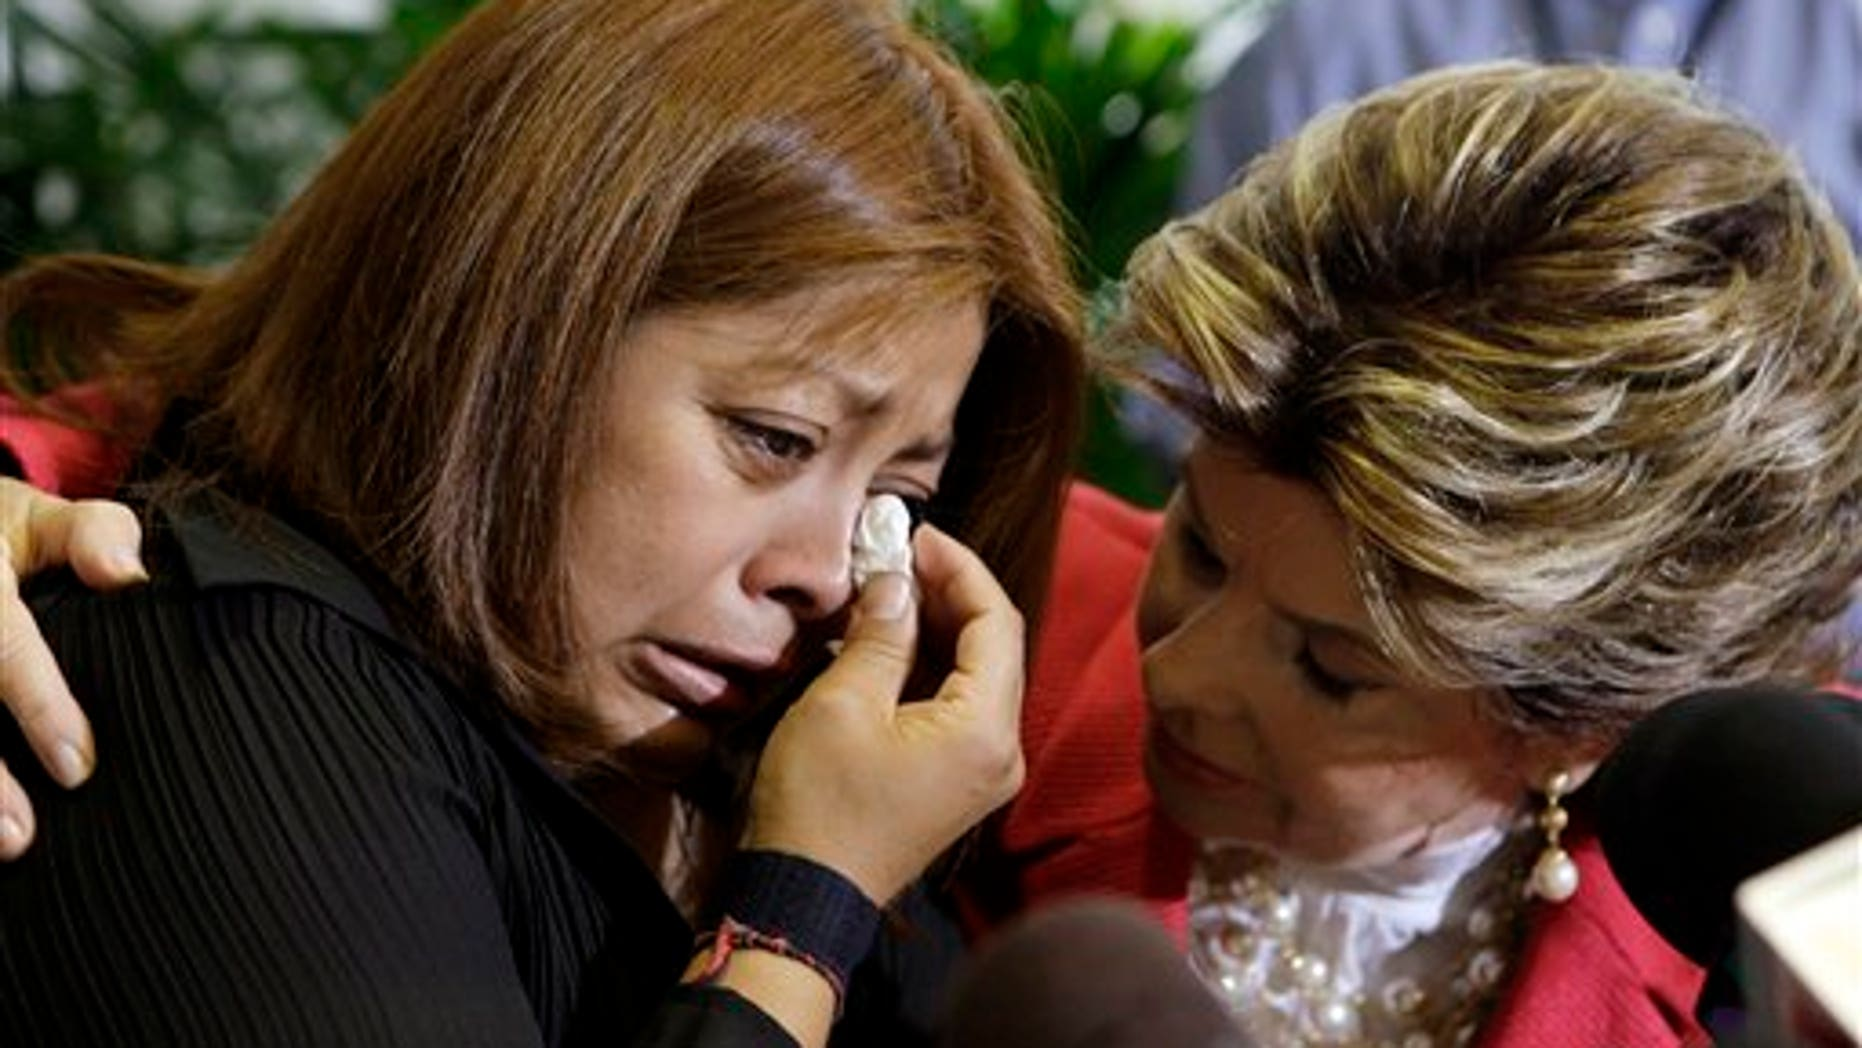 Nicky Diaz, left, former housekeeper for California GOP gubernatorial candidate Meg Whitman, weeps as she talks to reporters with attorney Gloria Allred in Los Angeles Wednesday, Sept. 29, 2010.  Diaz alleges that Whitman was notified seven years ago that the worker might be in the country illegally, but did nothing about it.  (AP Photo/Reed Saxon)